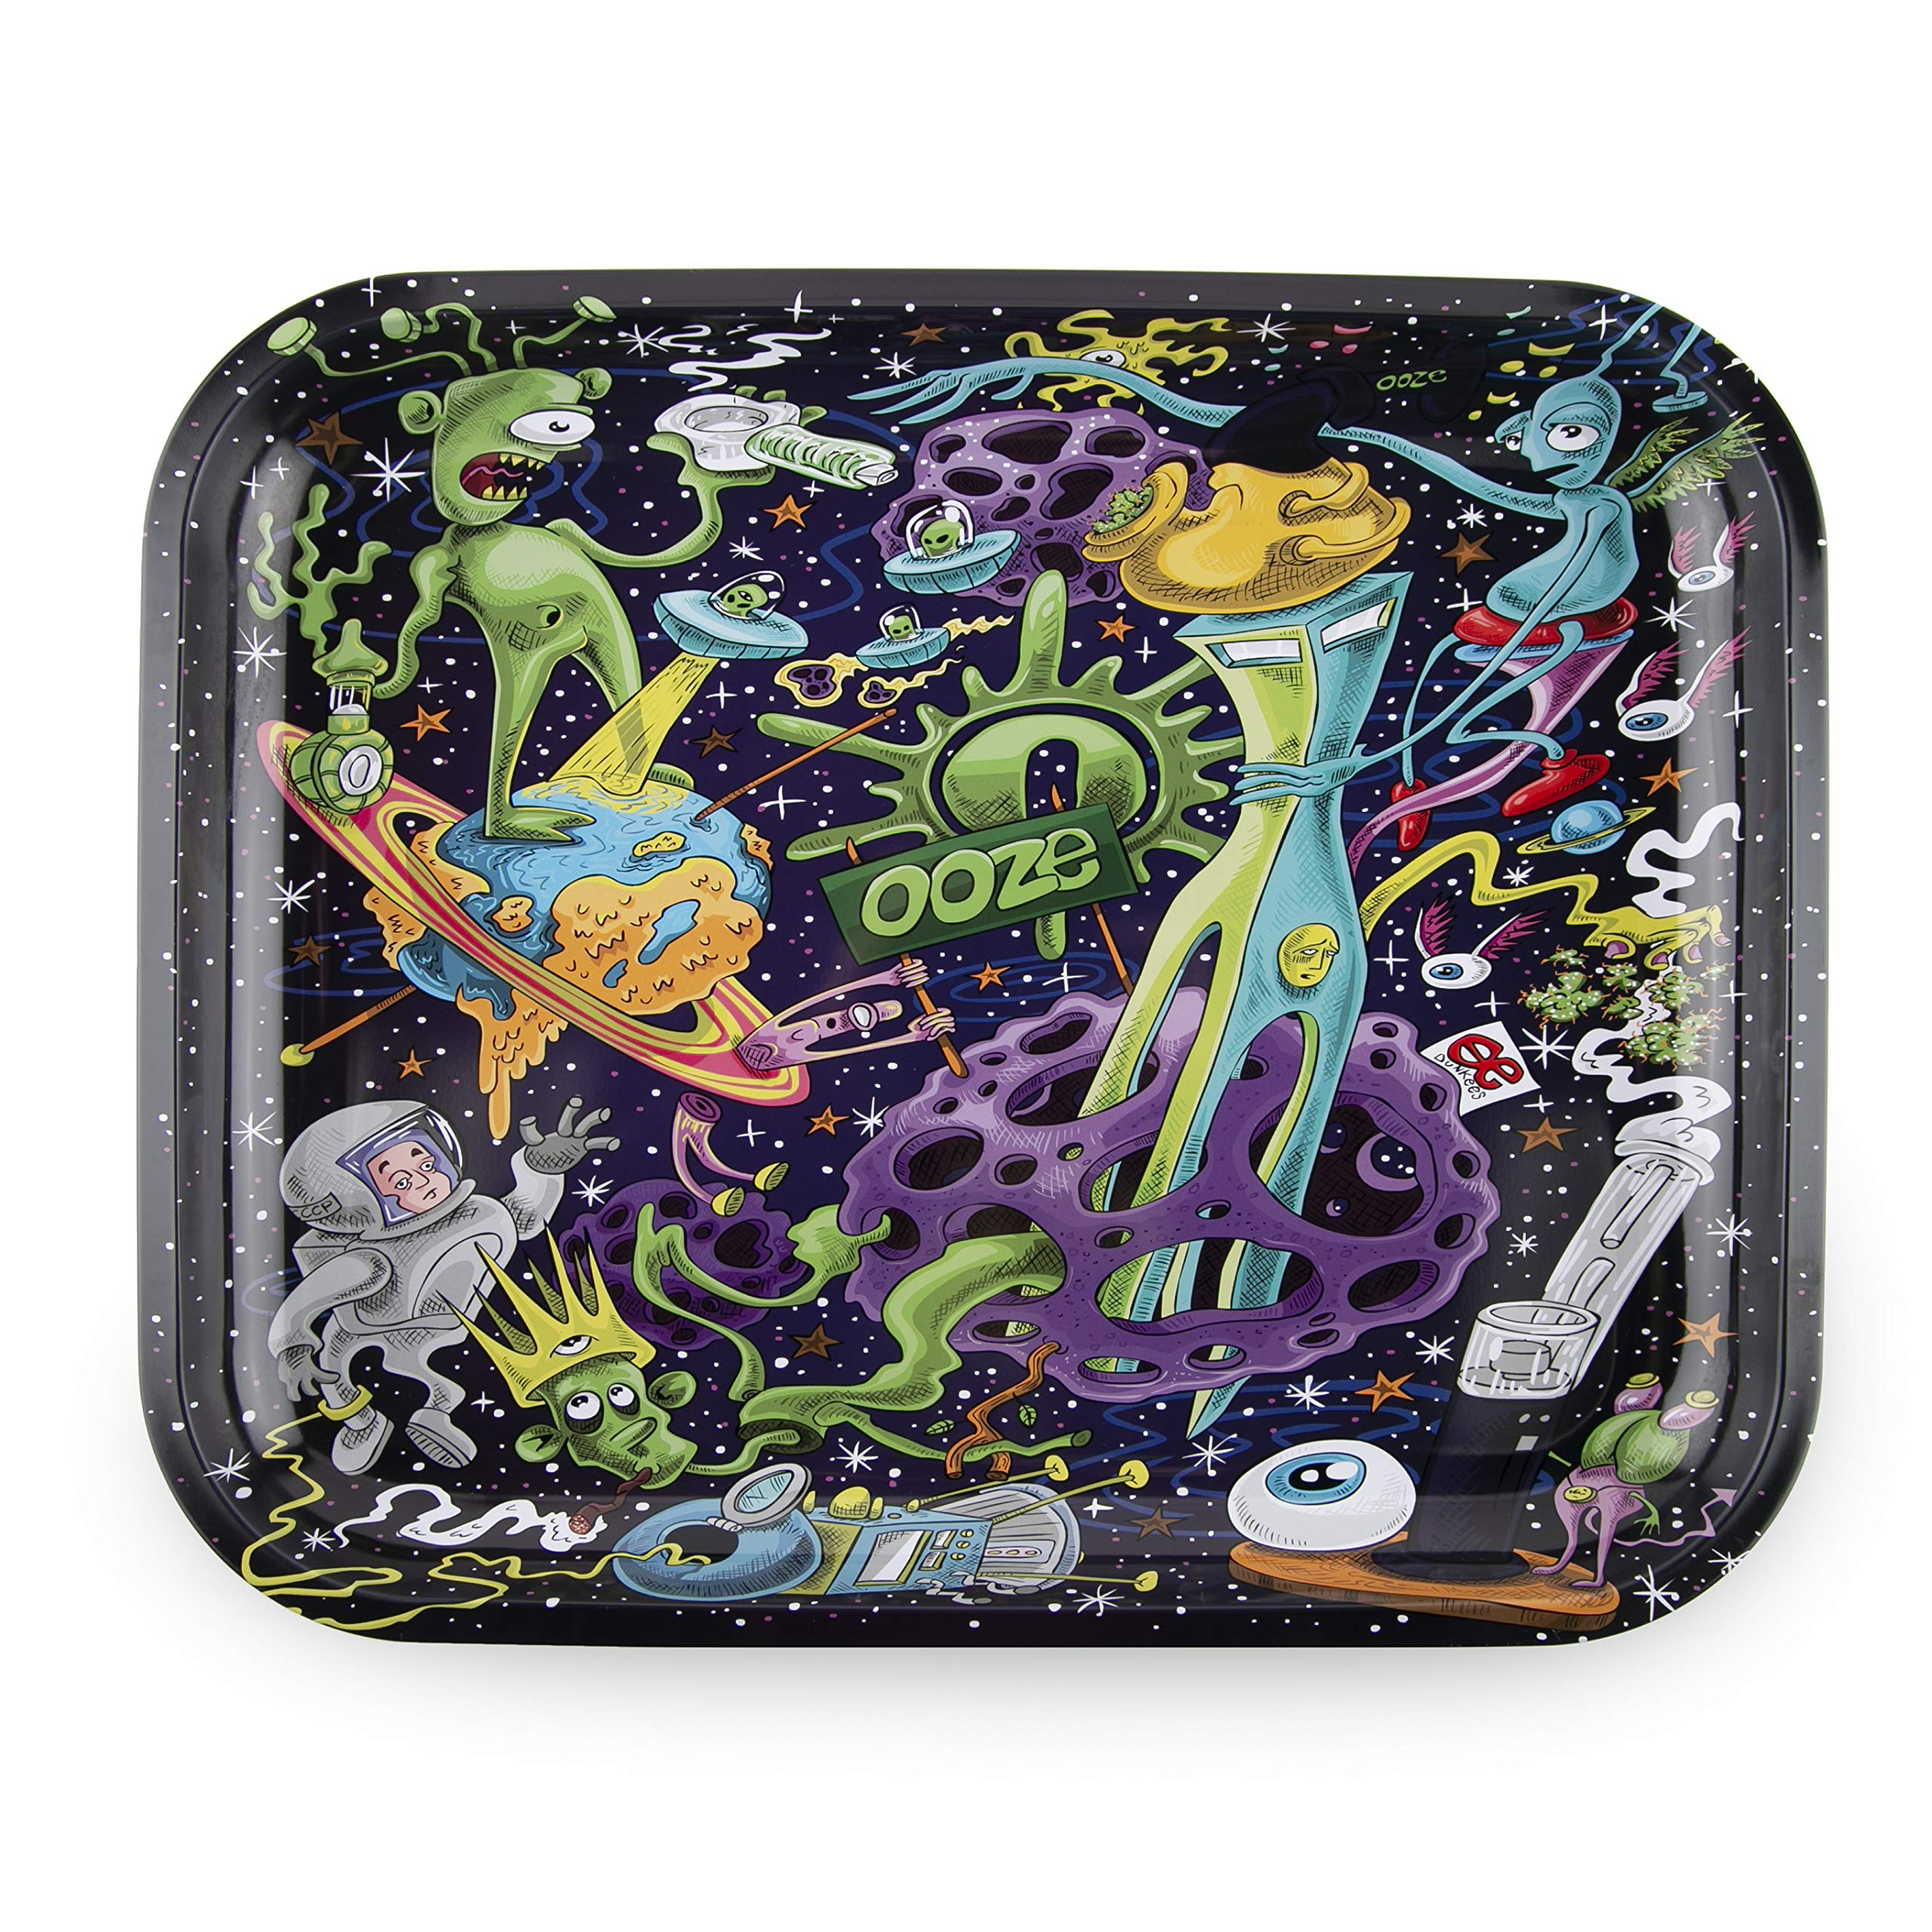 Ooze - Metal Rolling Tray - Universe - (Large) by Ooze Life